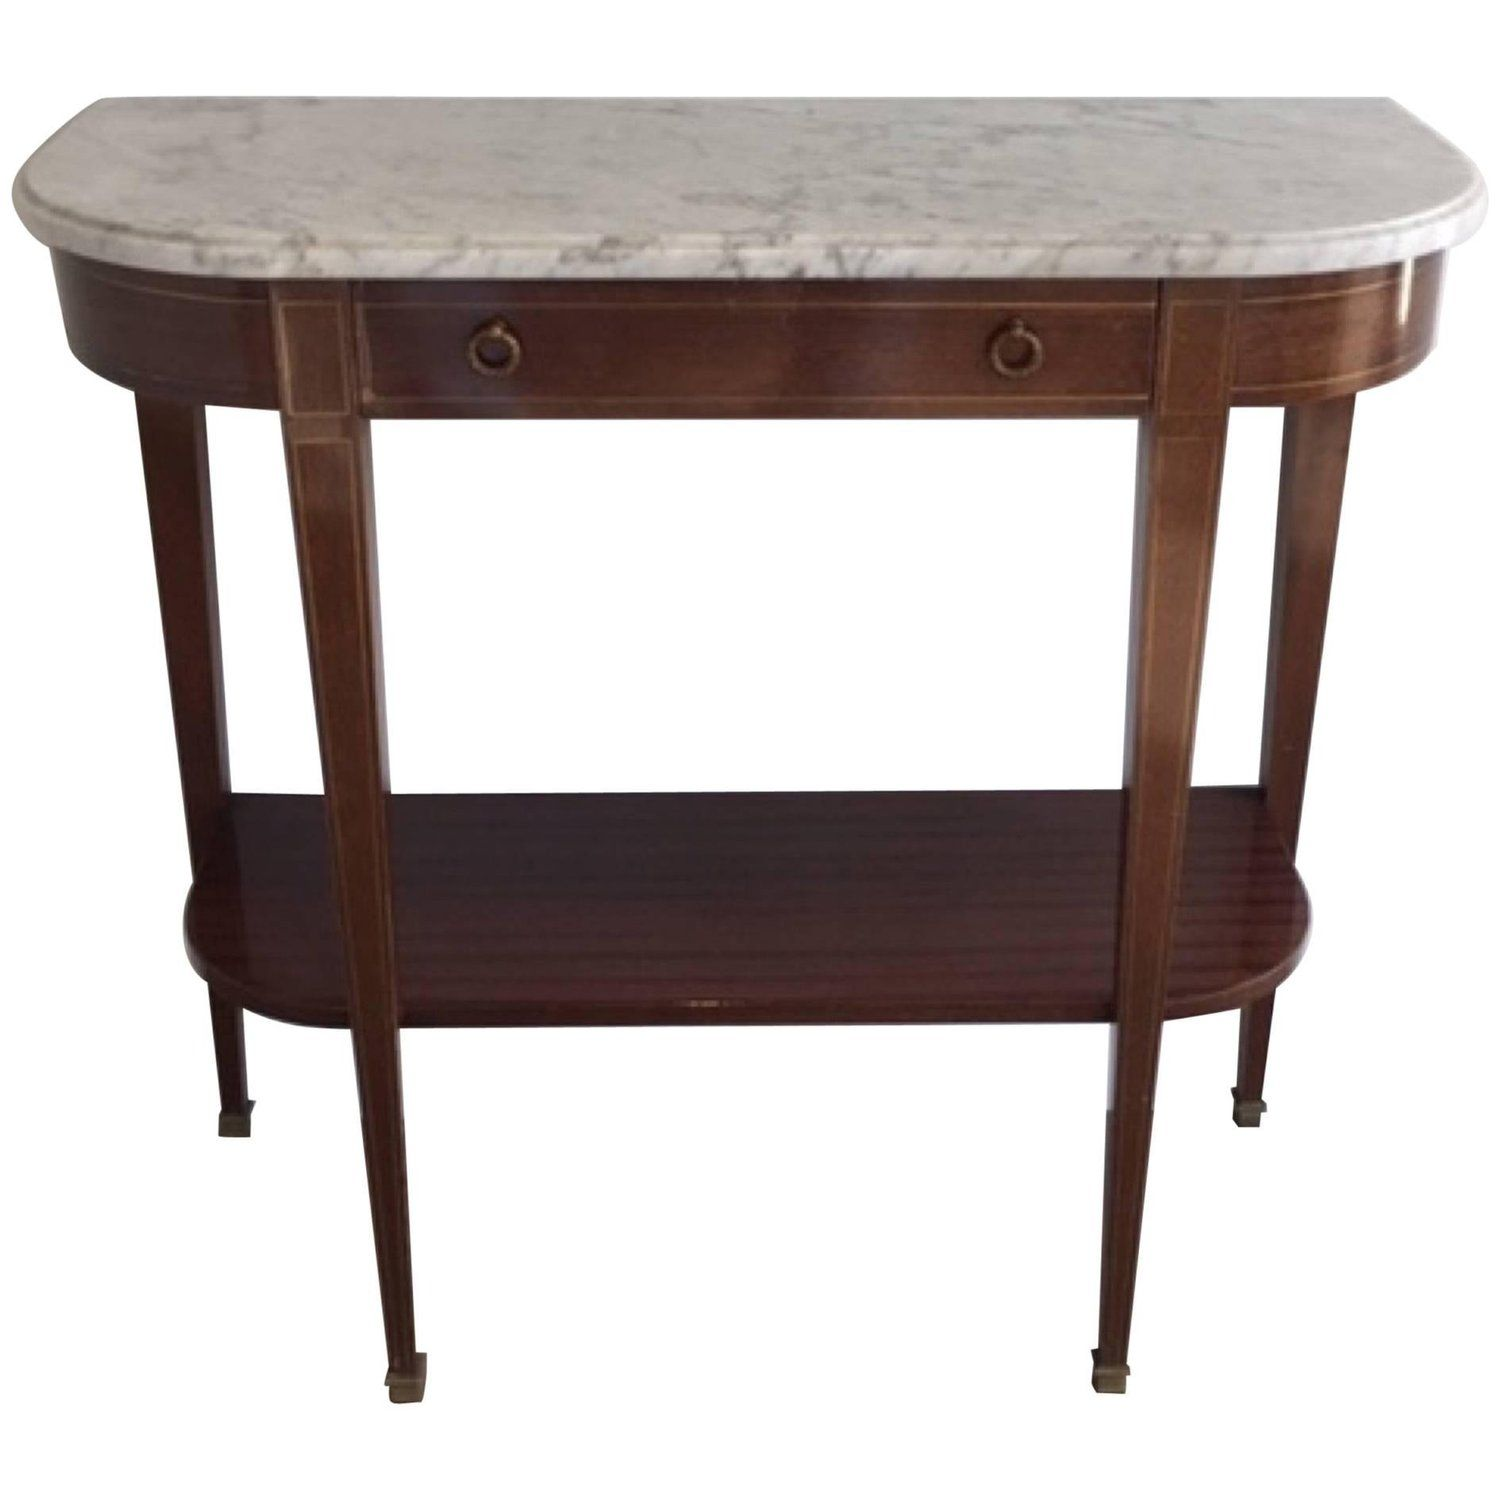 Mahogany Brass Neoclassical Console Table With White Marble Top Signed Brault Marble Top White Marble Console Table